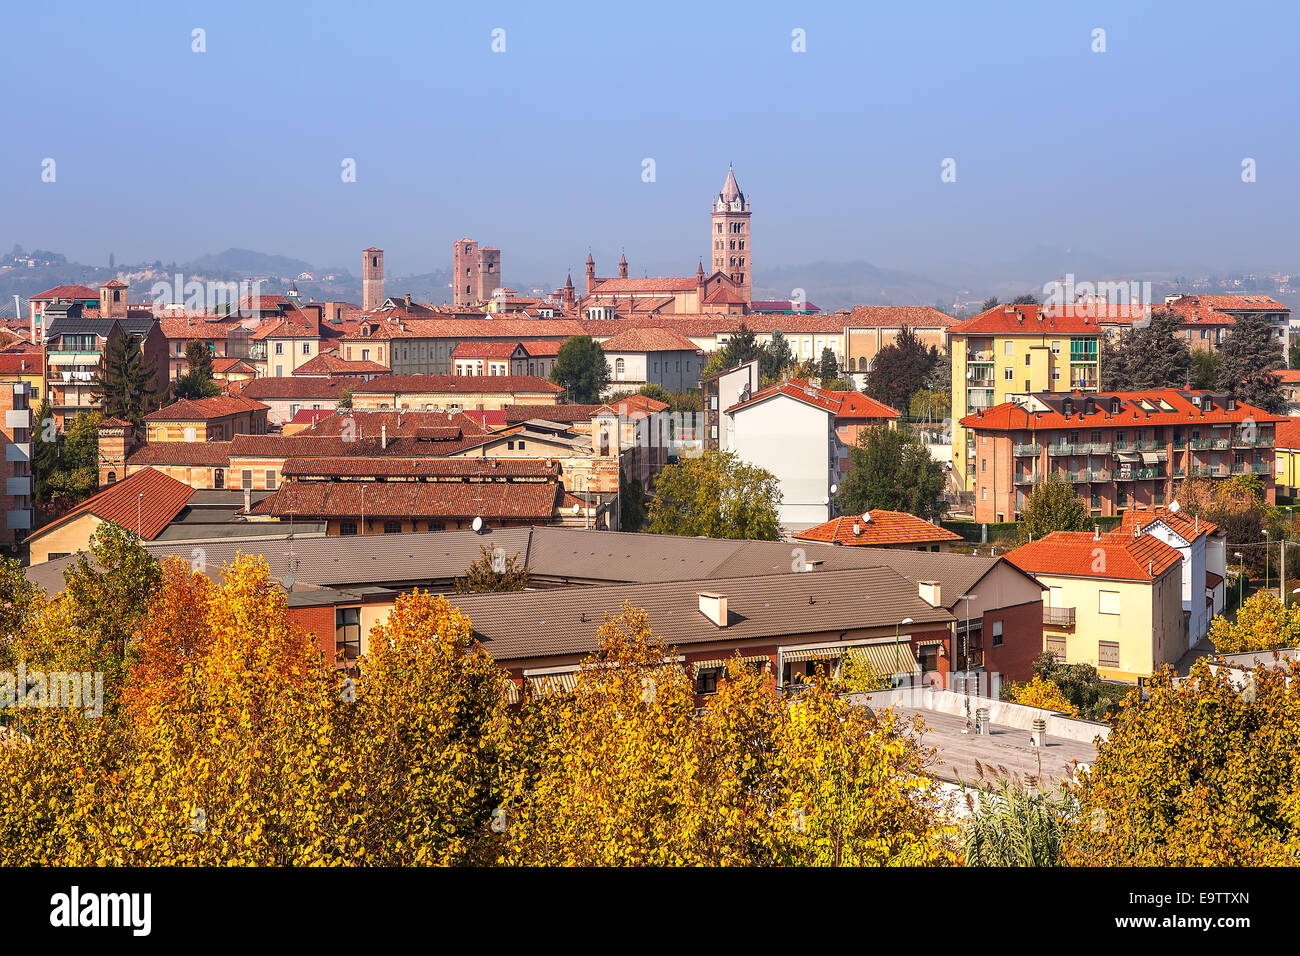 Town of Alba in autumn in Piedmont, Northern Italy. - Stock Image